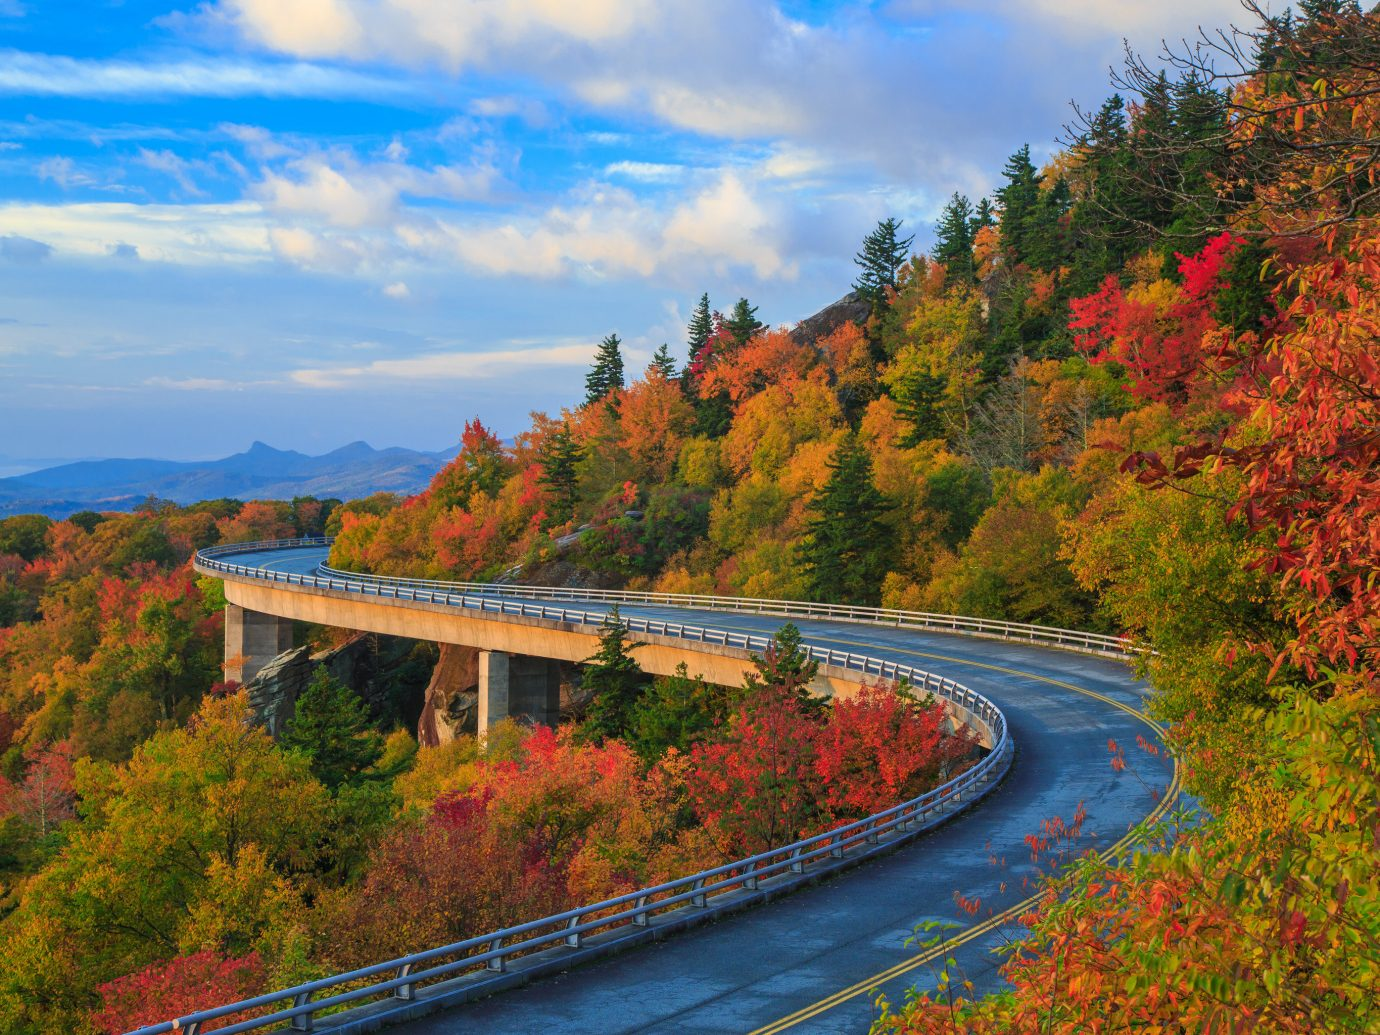 Trip Ideas tree train outdoor sky track mountainous landforms Nature autumn mountain traveling season way Forest leaf plant hill scene River morning woody plant landscape rural area reflection mountain range flower highway meadow lush road wooded surrounded bushes moving beautiful hillside